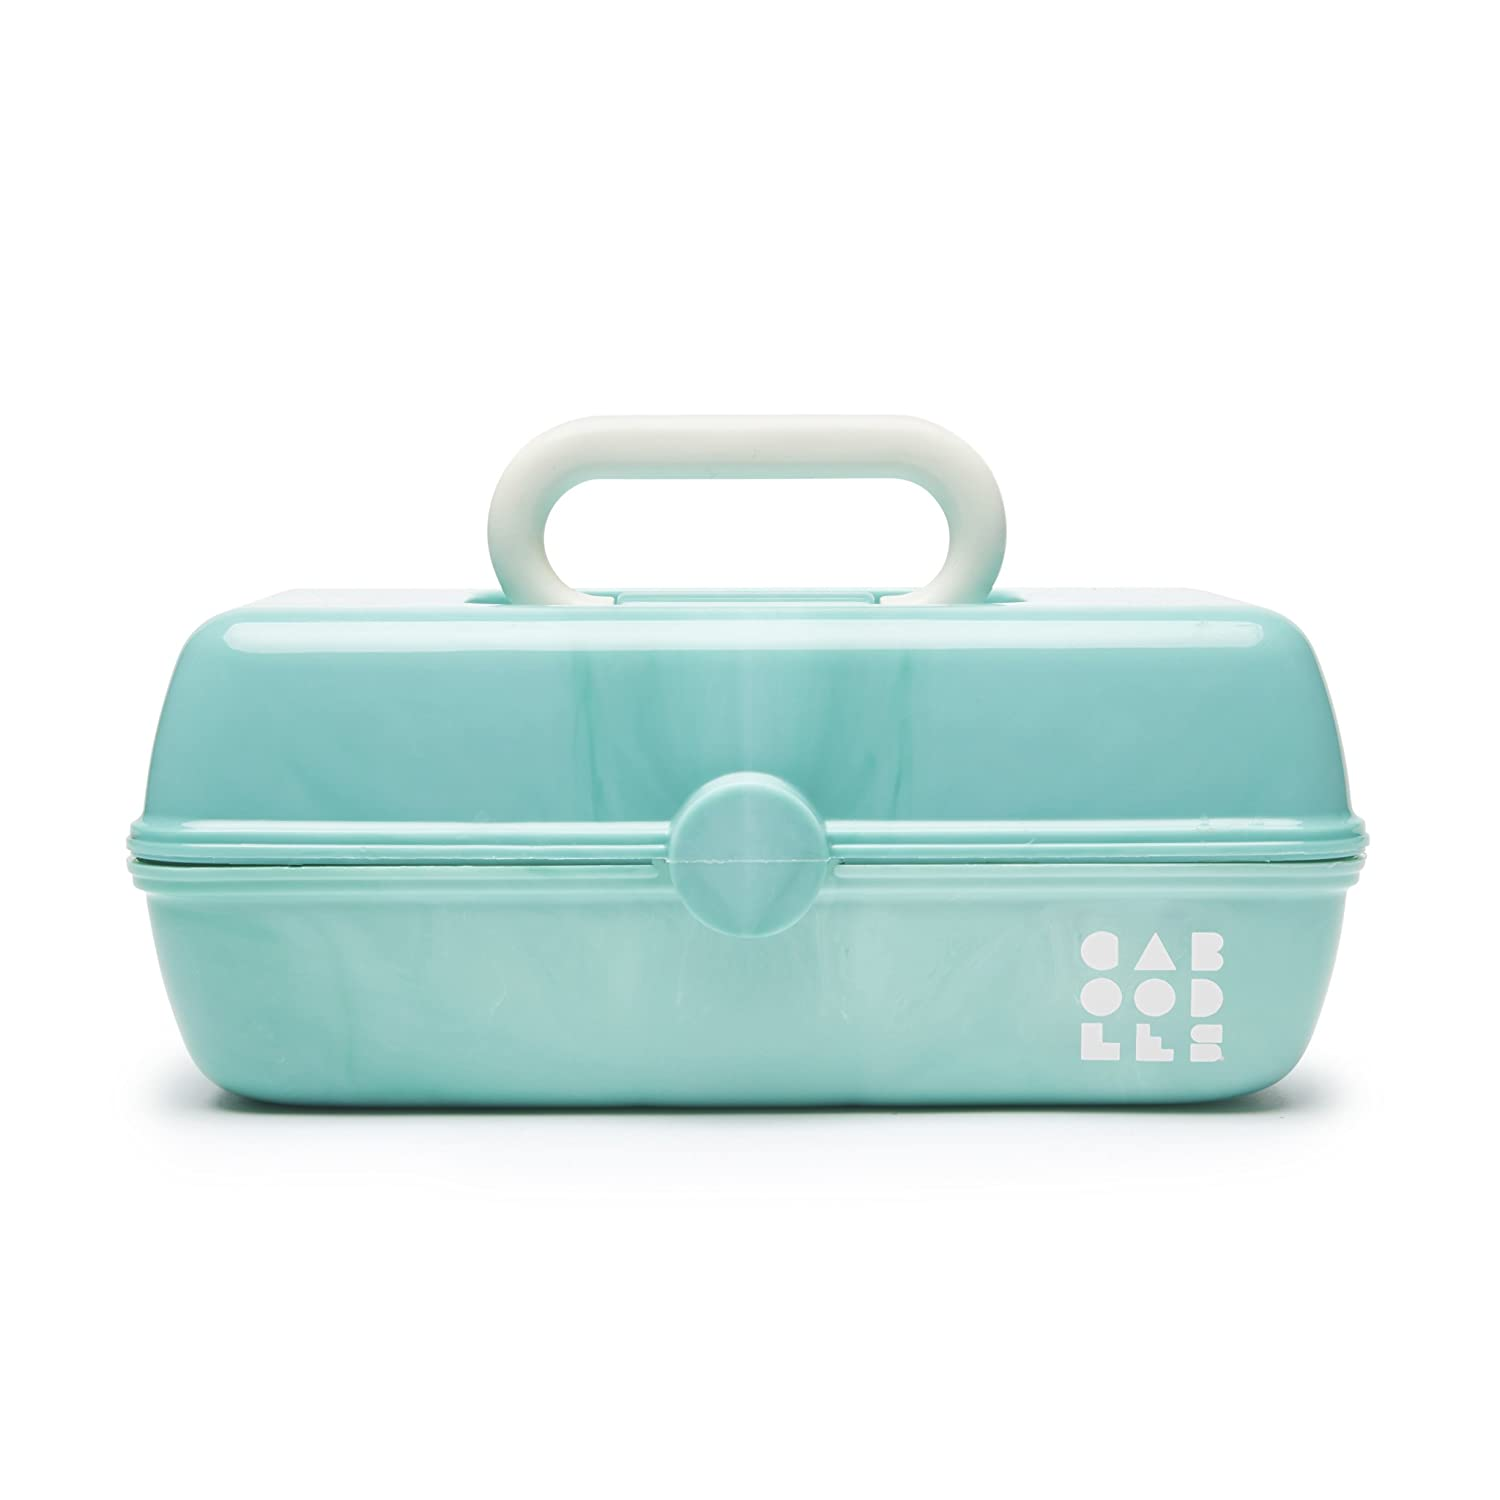 Caboodles Pretty in Petite Sea Foam Marble Vintage Case, 1 Pound